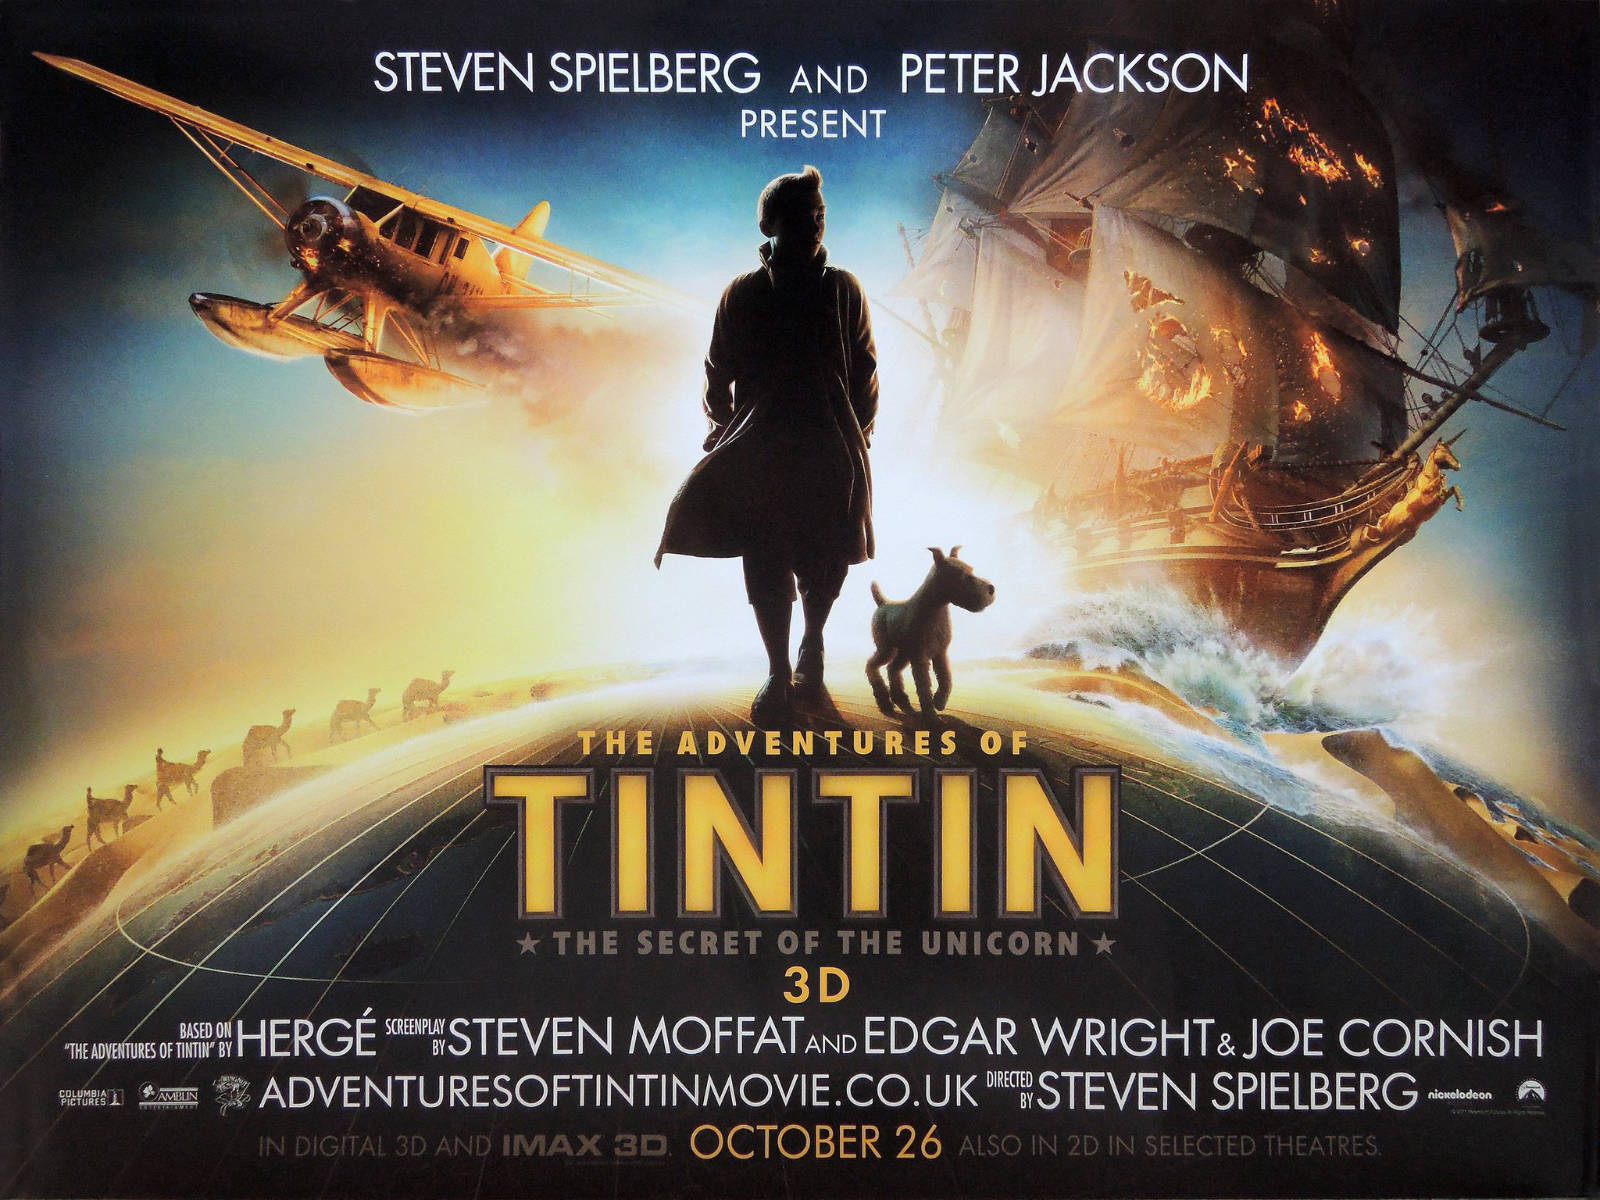 Notes On A Film: The Adventures of Tintin